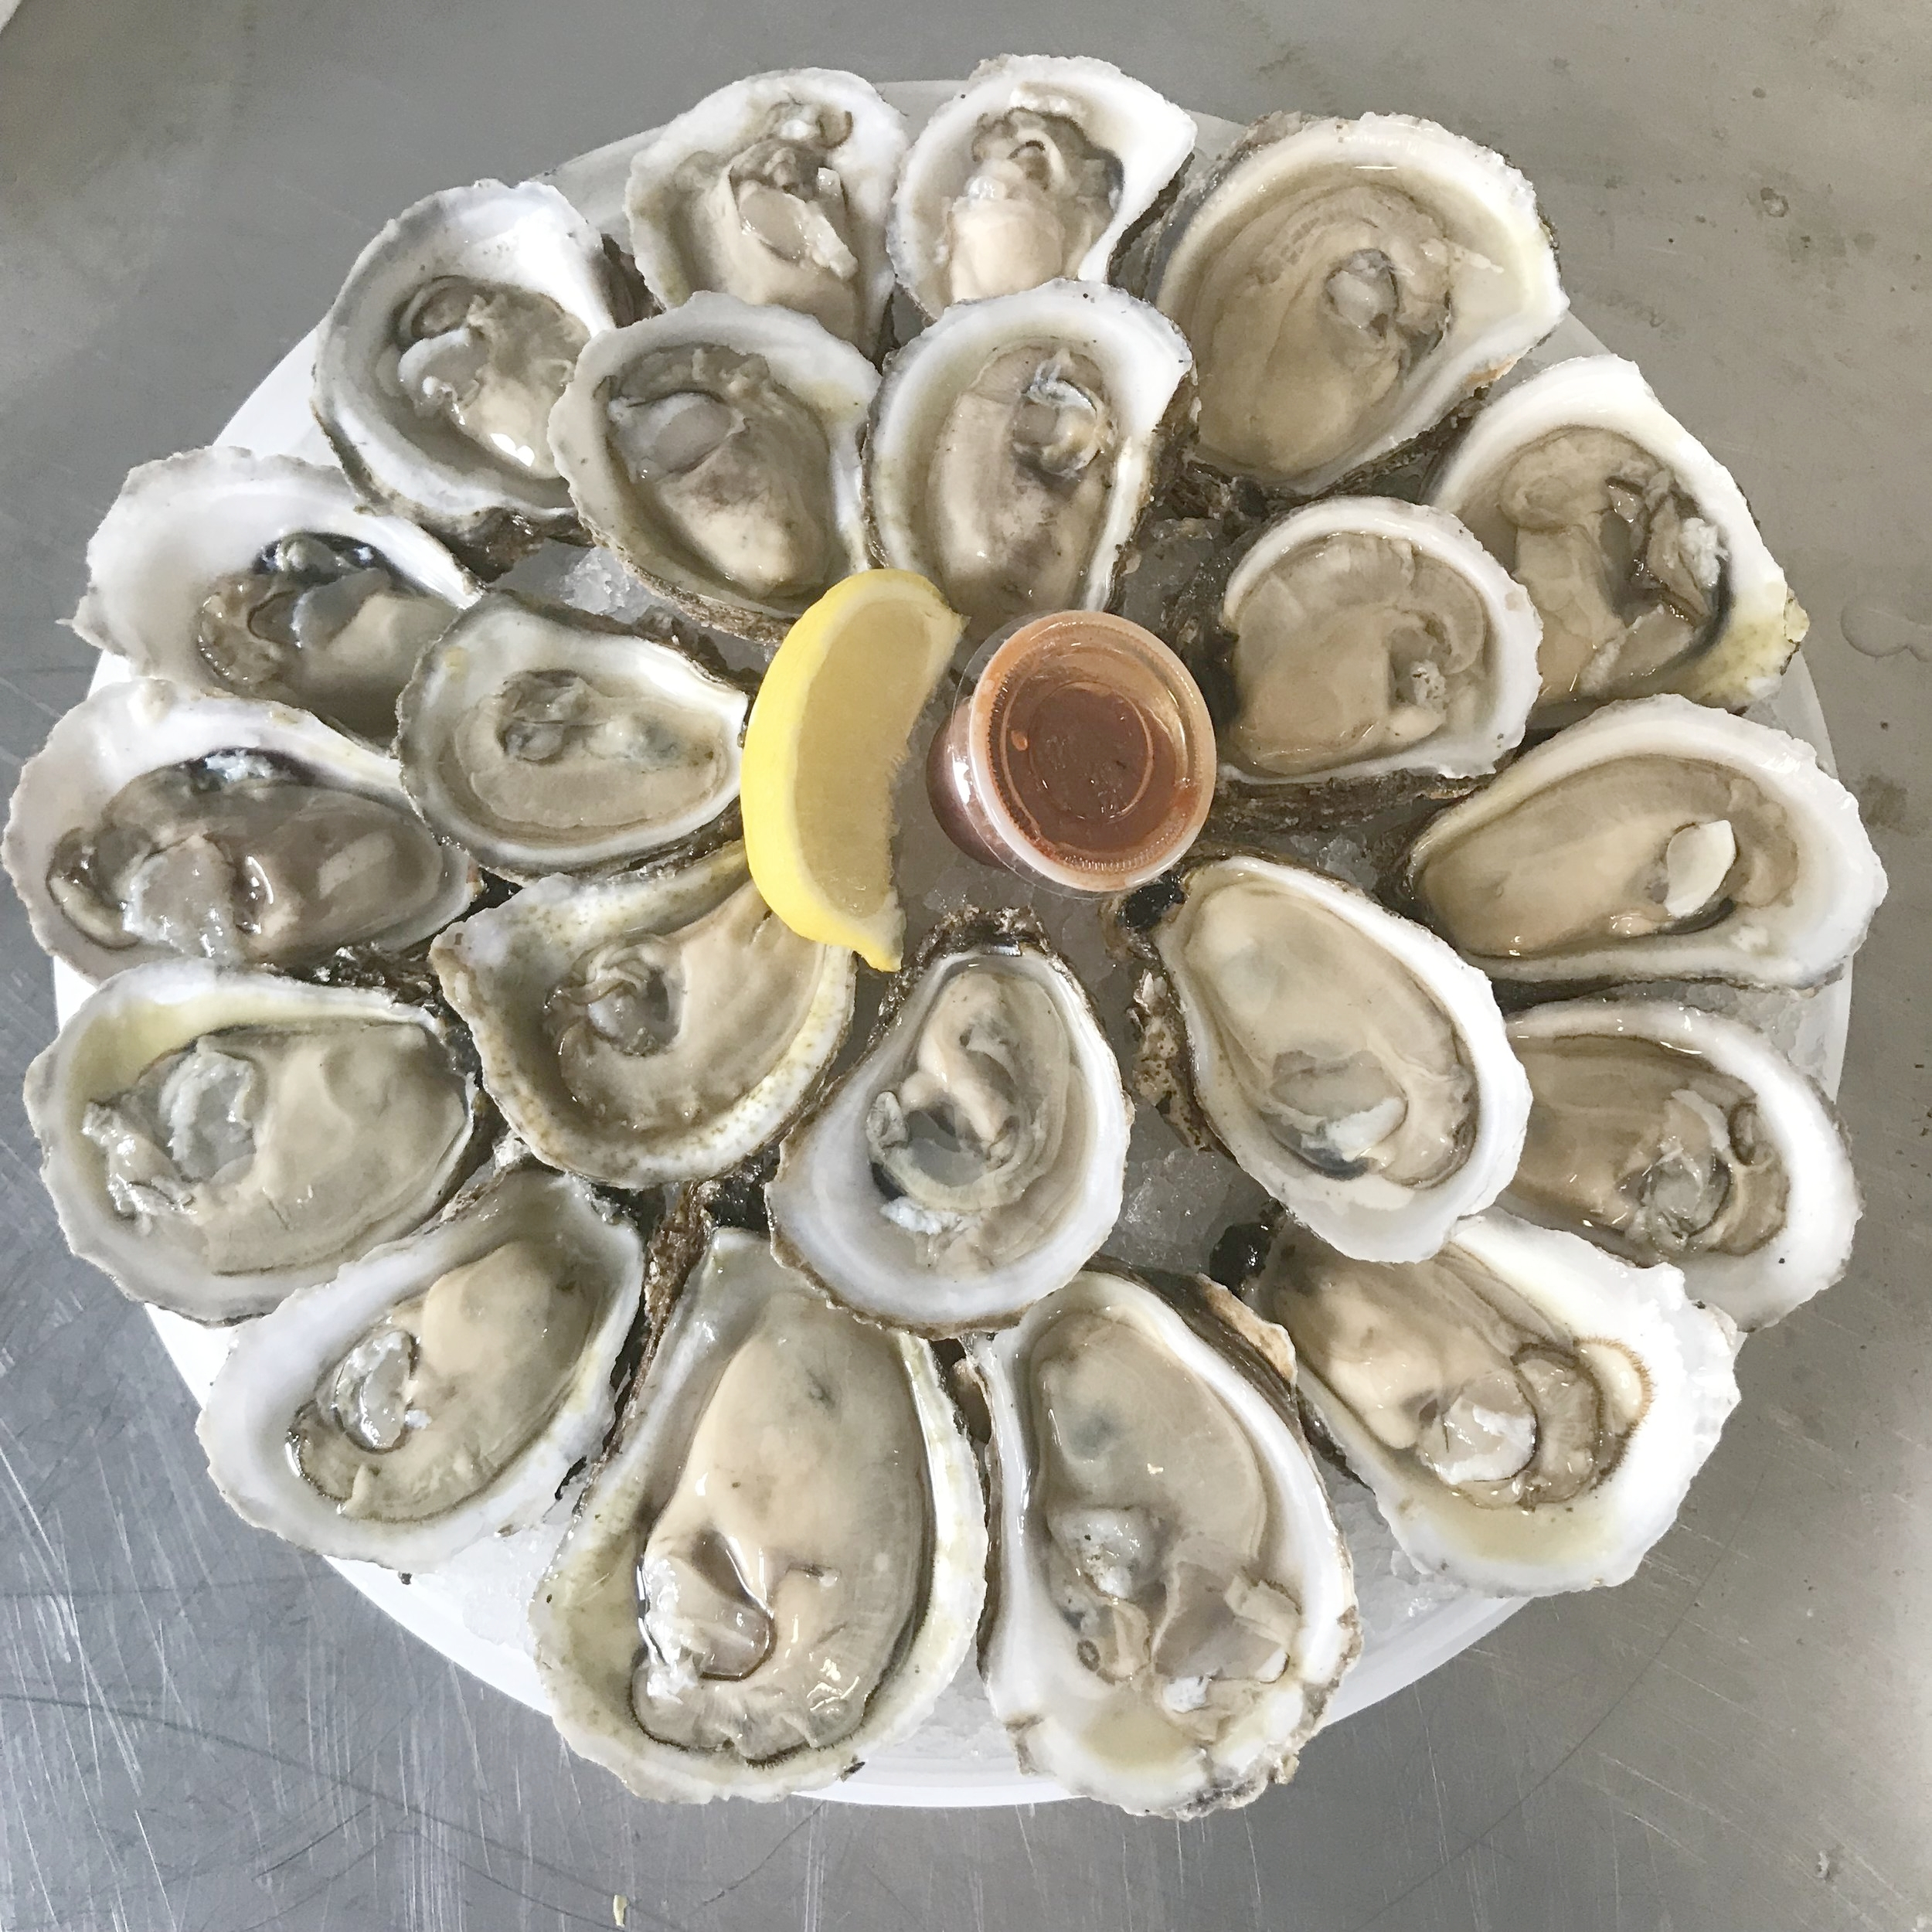 Looking to make Graveling Point oysters your way? You're in luck! Our Fish Market is the only place to buy our oysters retail!